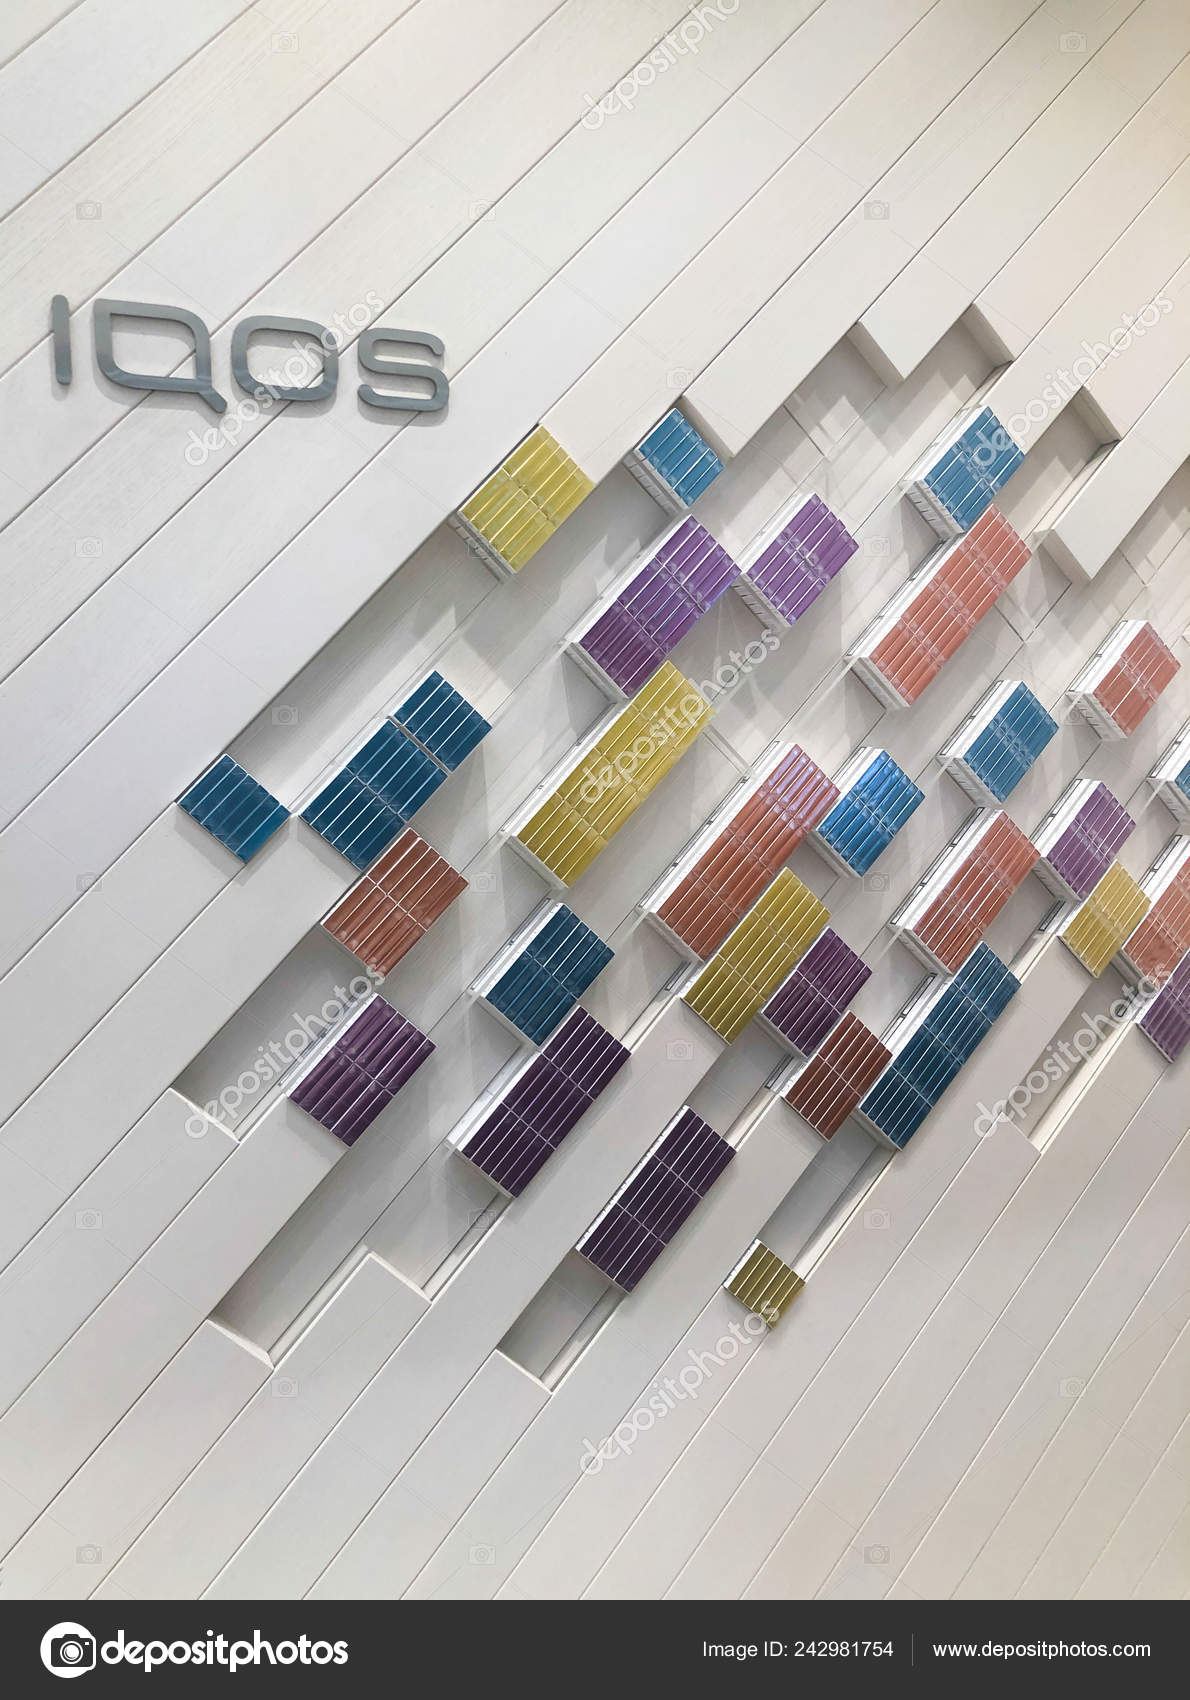 MOSCOW, RUSSIA - FEBRUARY 04, 2019: Iqos electronic